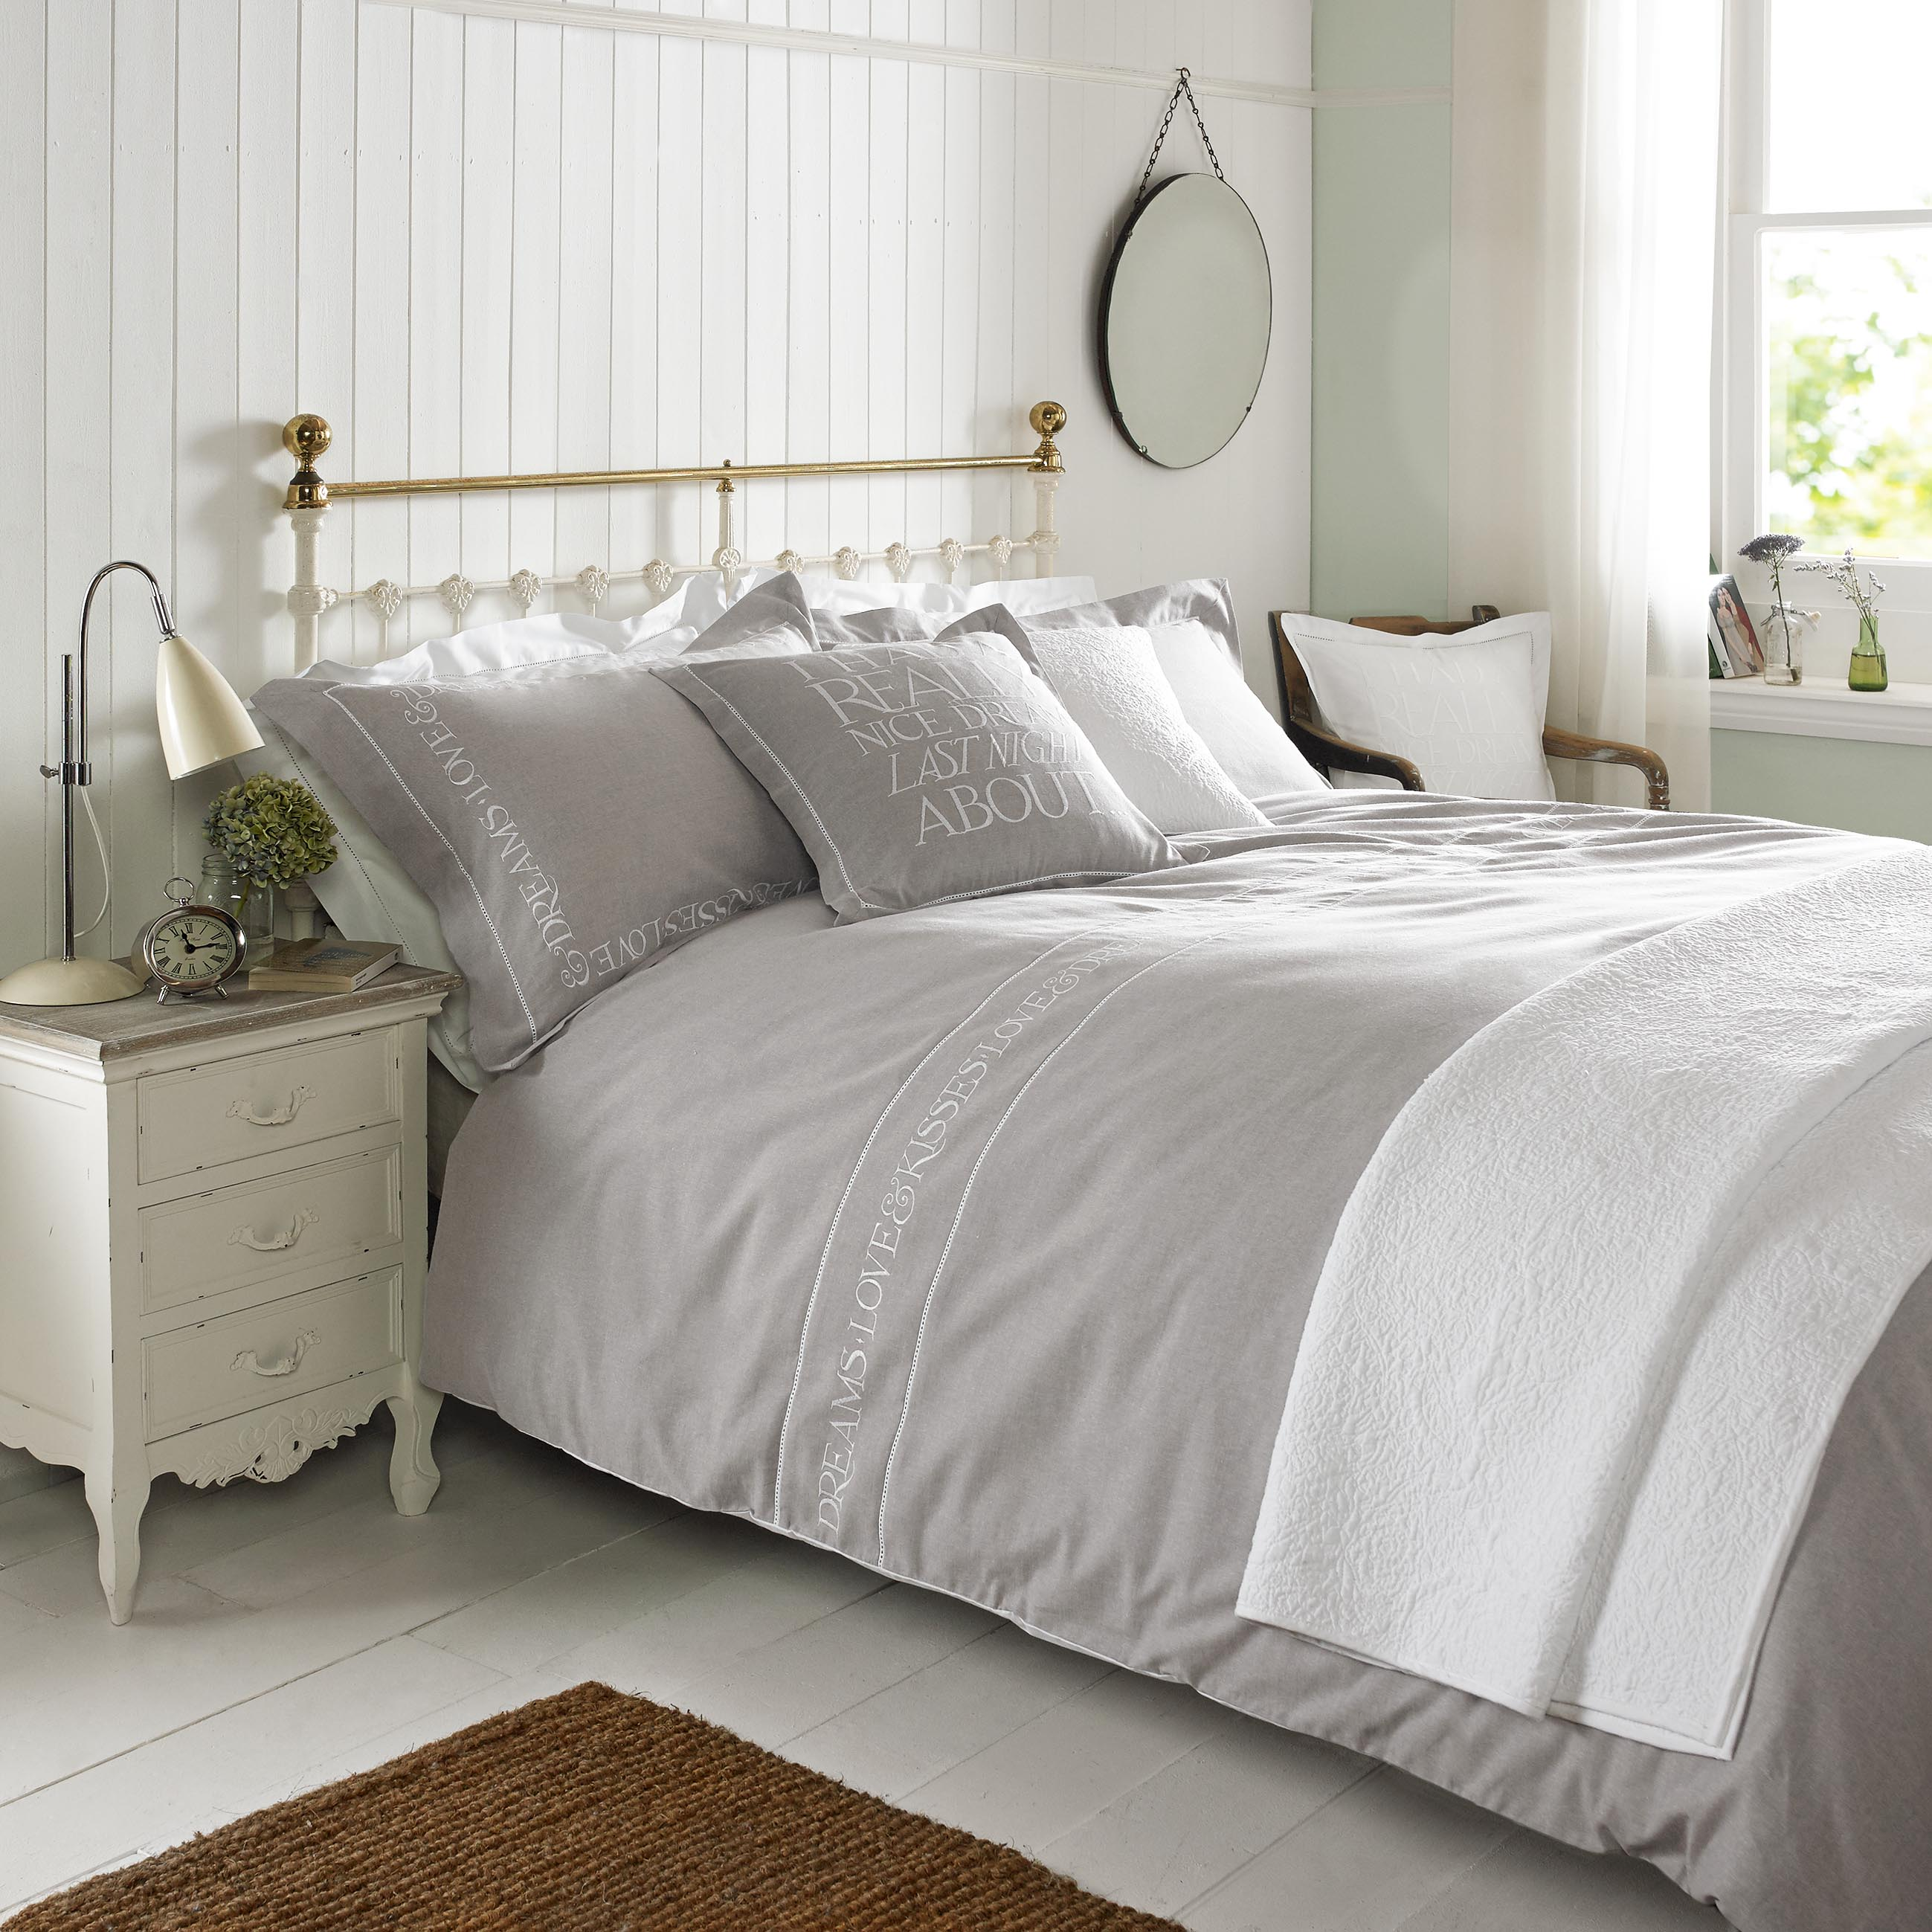 Embroidered Natural Bed Linen By Emma Bridgewater House